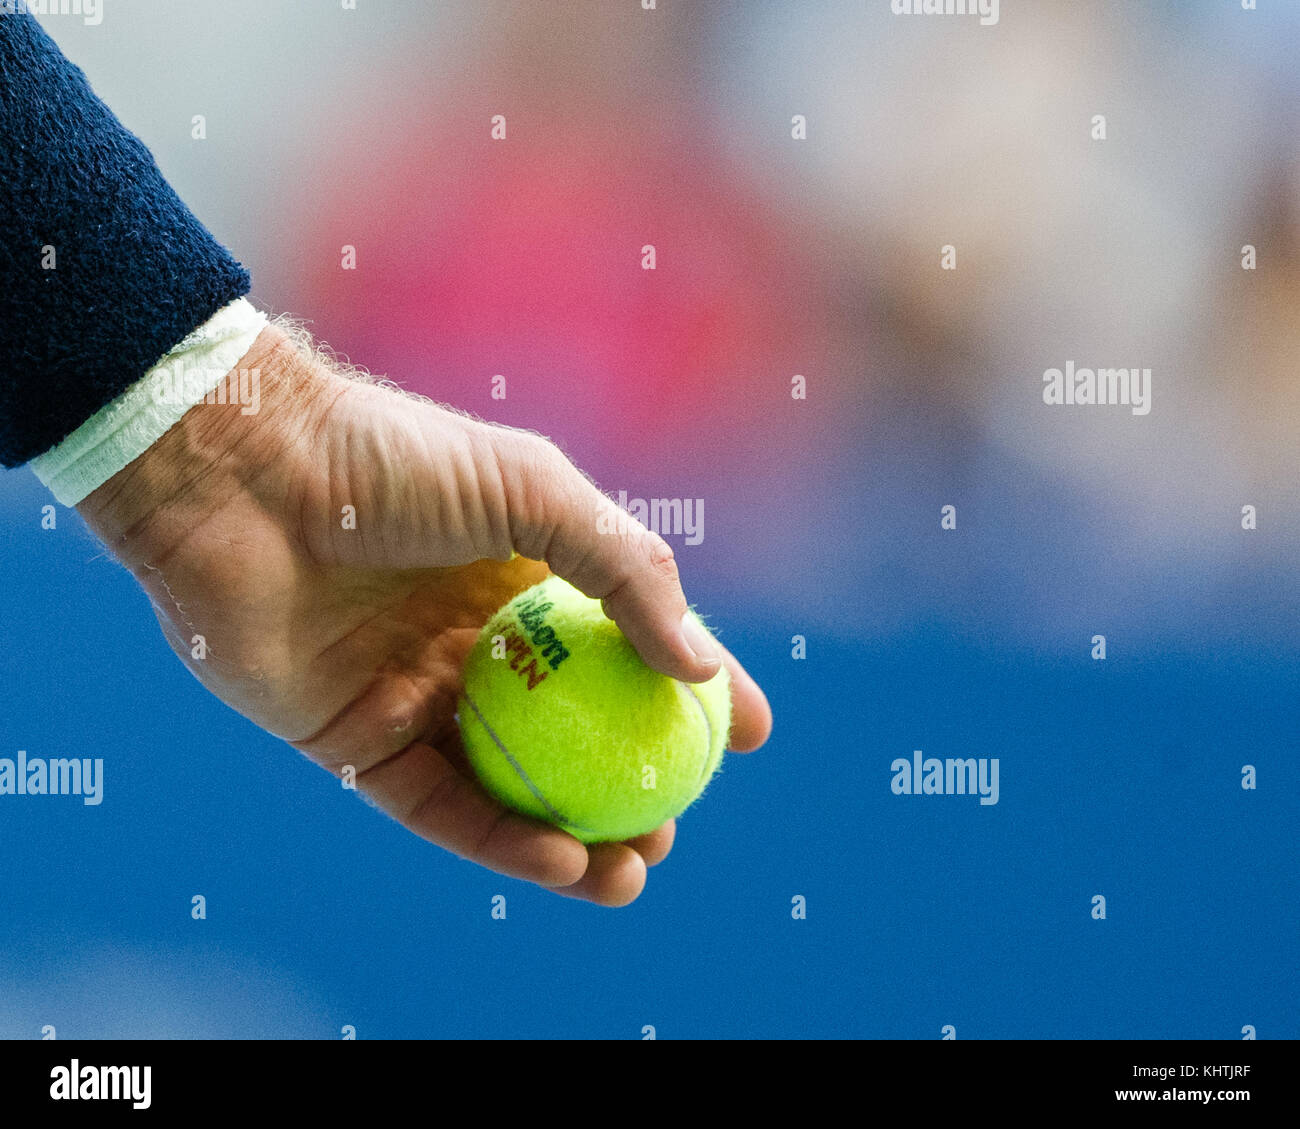 South African tennis player Kevin Anderson holding ball on court during men's singles final match in US Open - Stock Image